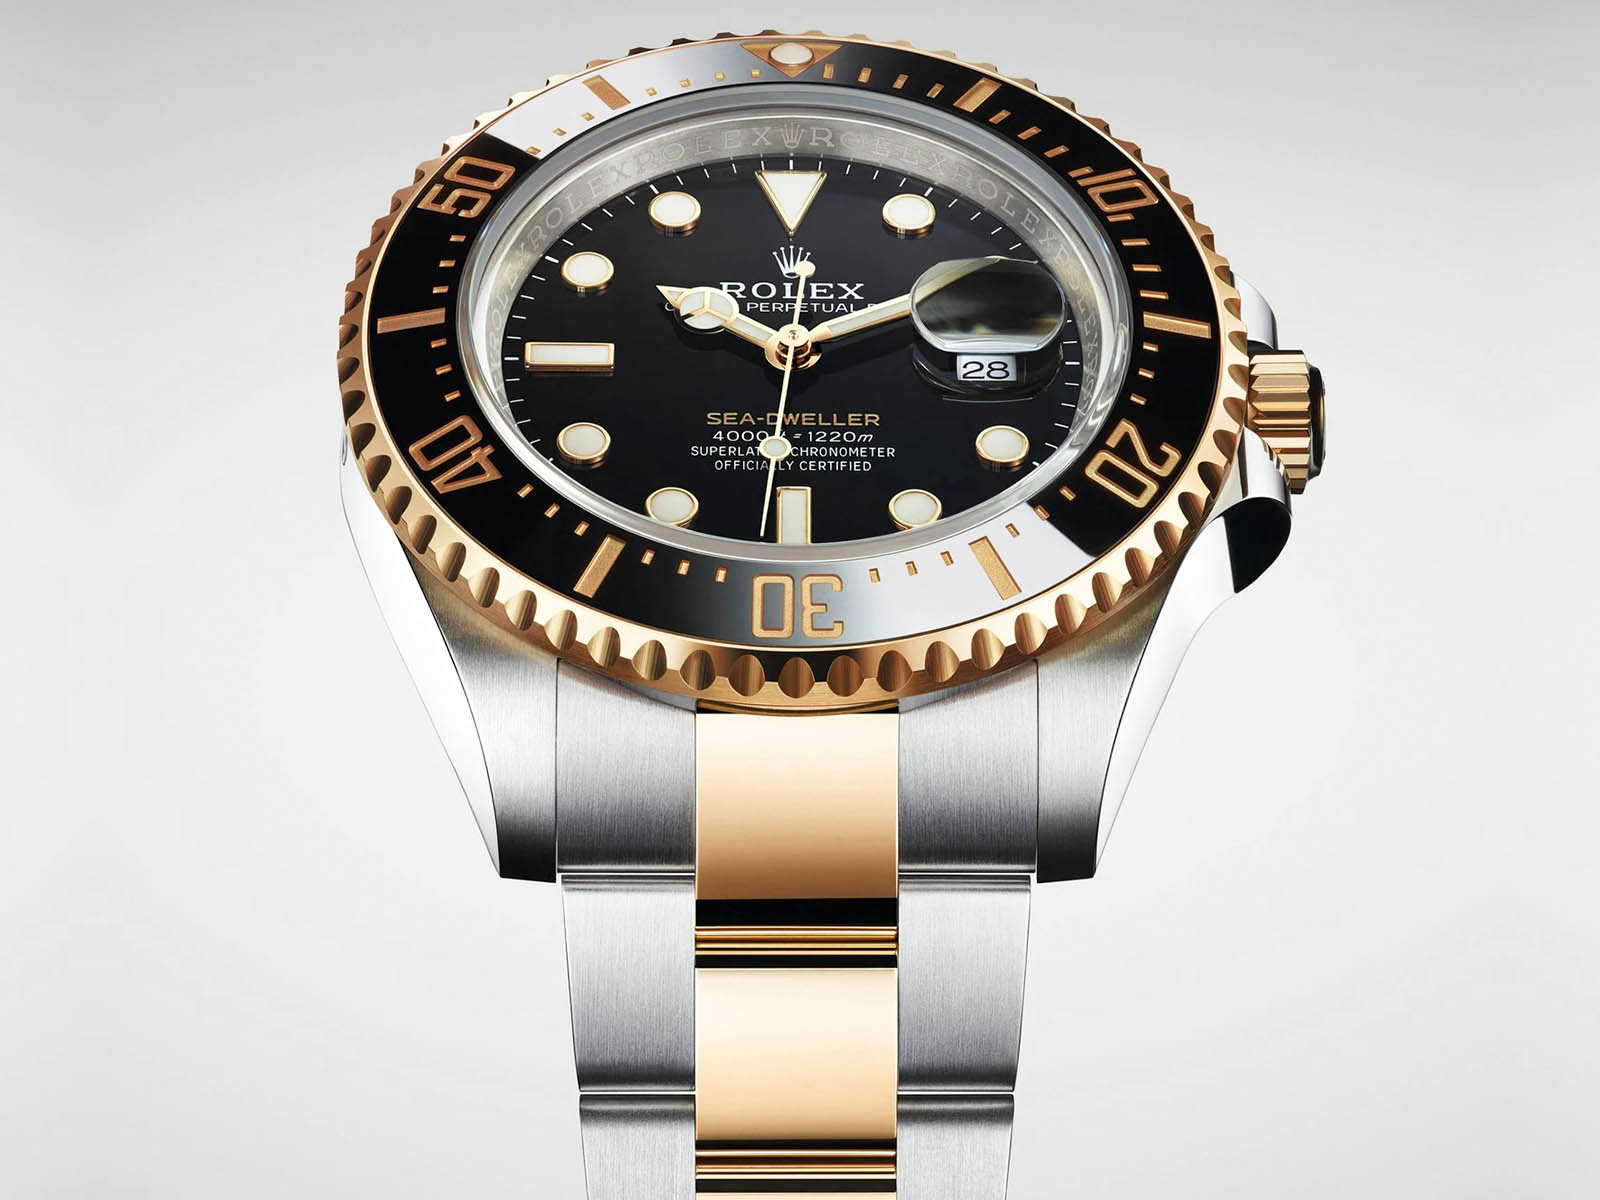 126603-rolex-oyster-perpetual-sea-dweller-two-tone-1.jpg